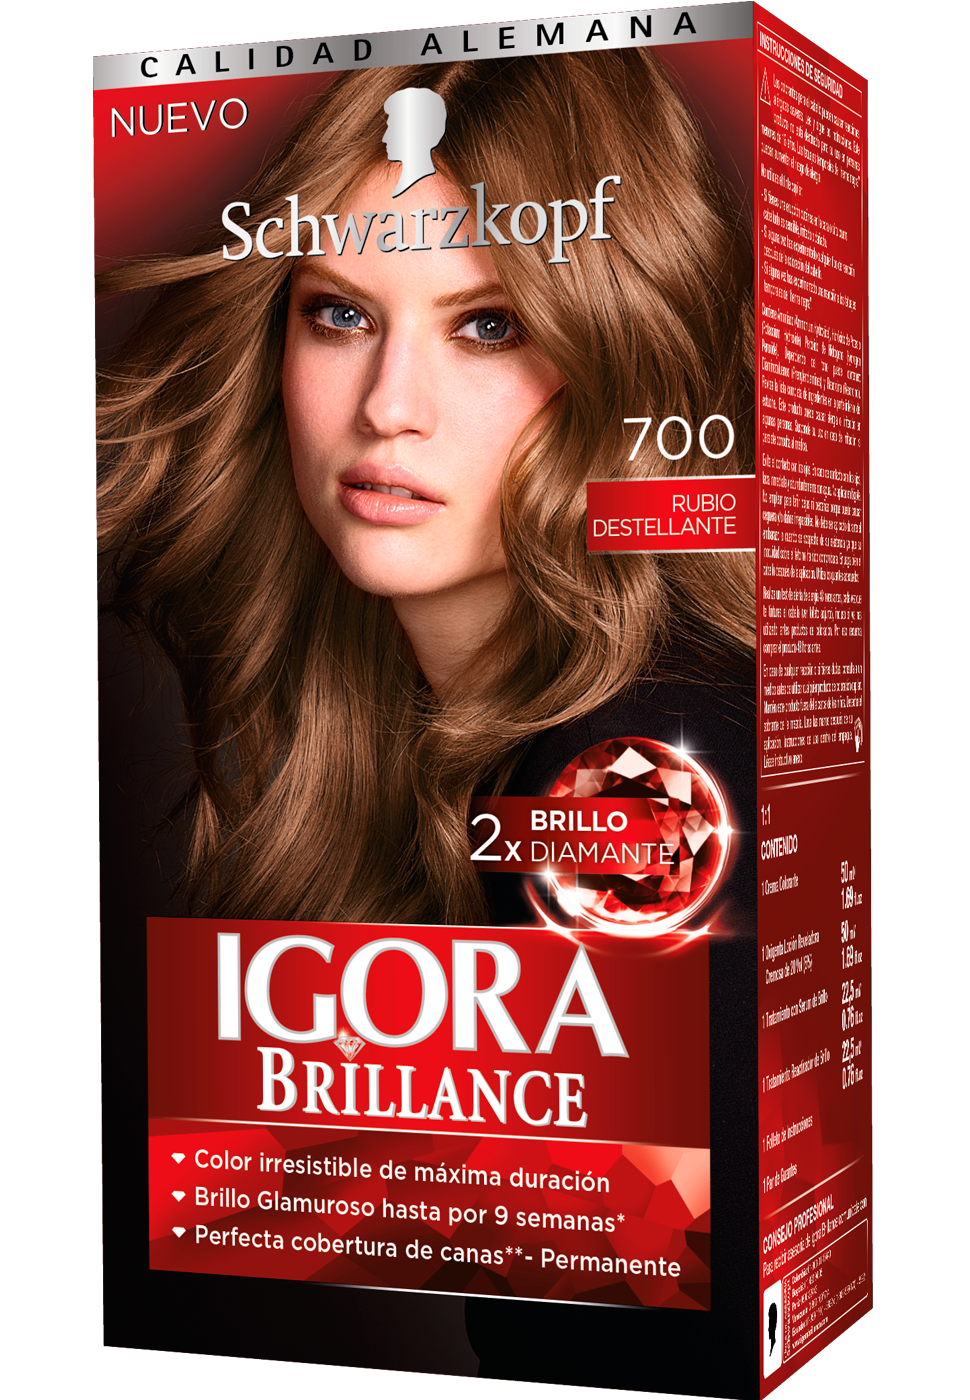 Igora brillance  700 rubio destellante